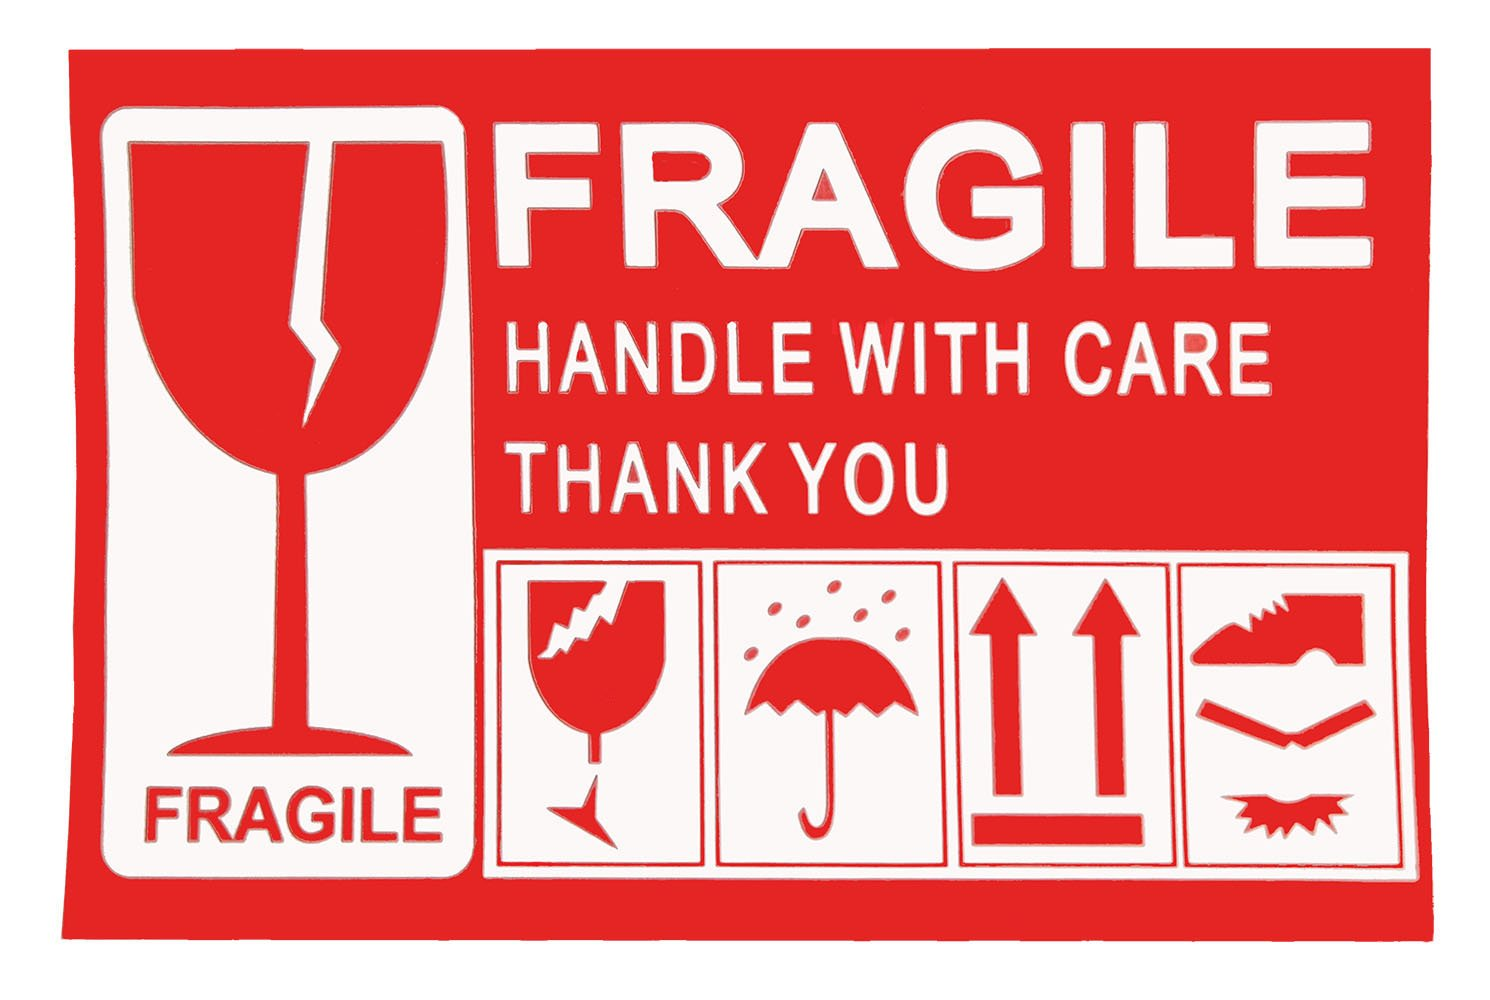 Remarkabel 5x 3 Red Permanent Adhesive Fragile - Handle with Care - Thank You Warning Shipping Label Stickers